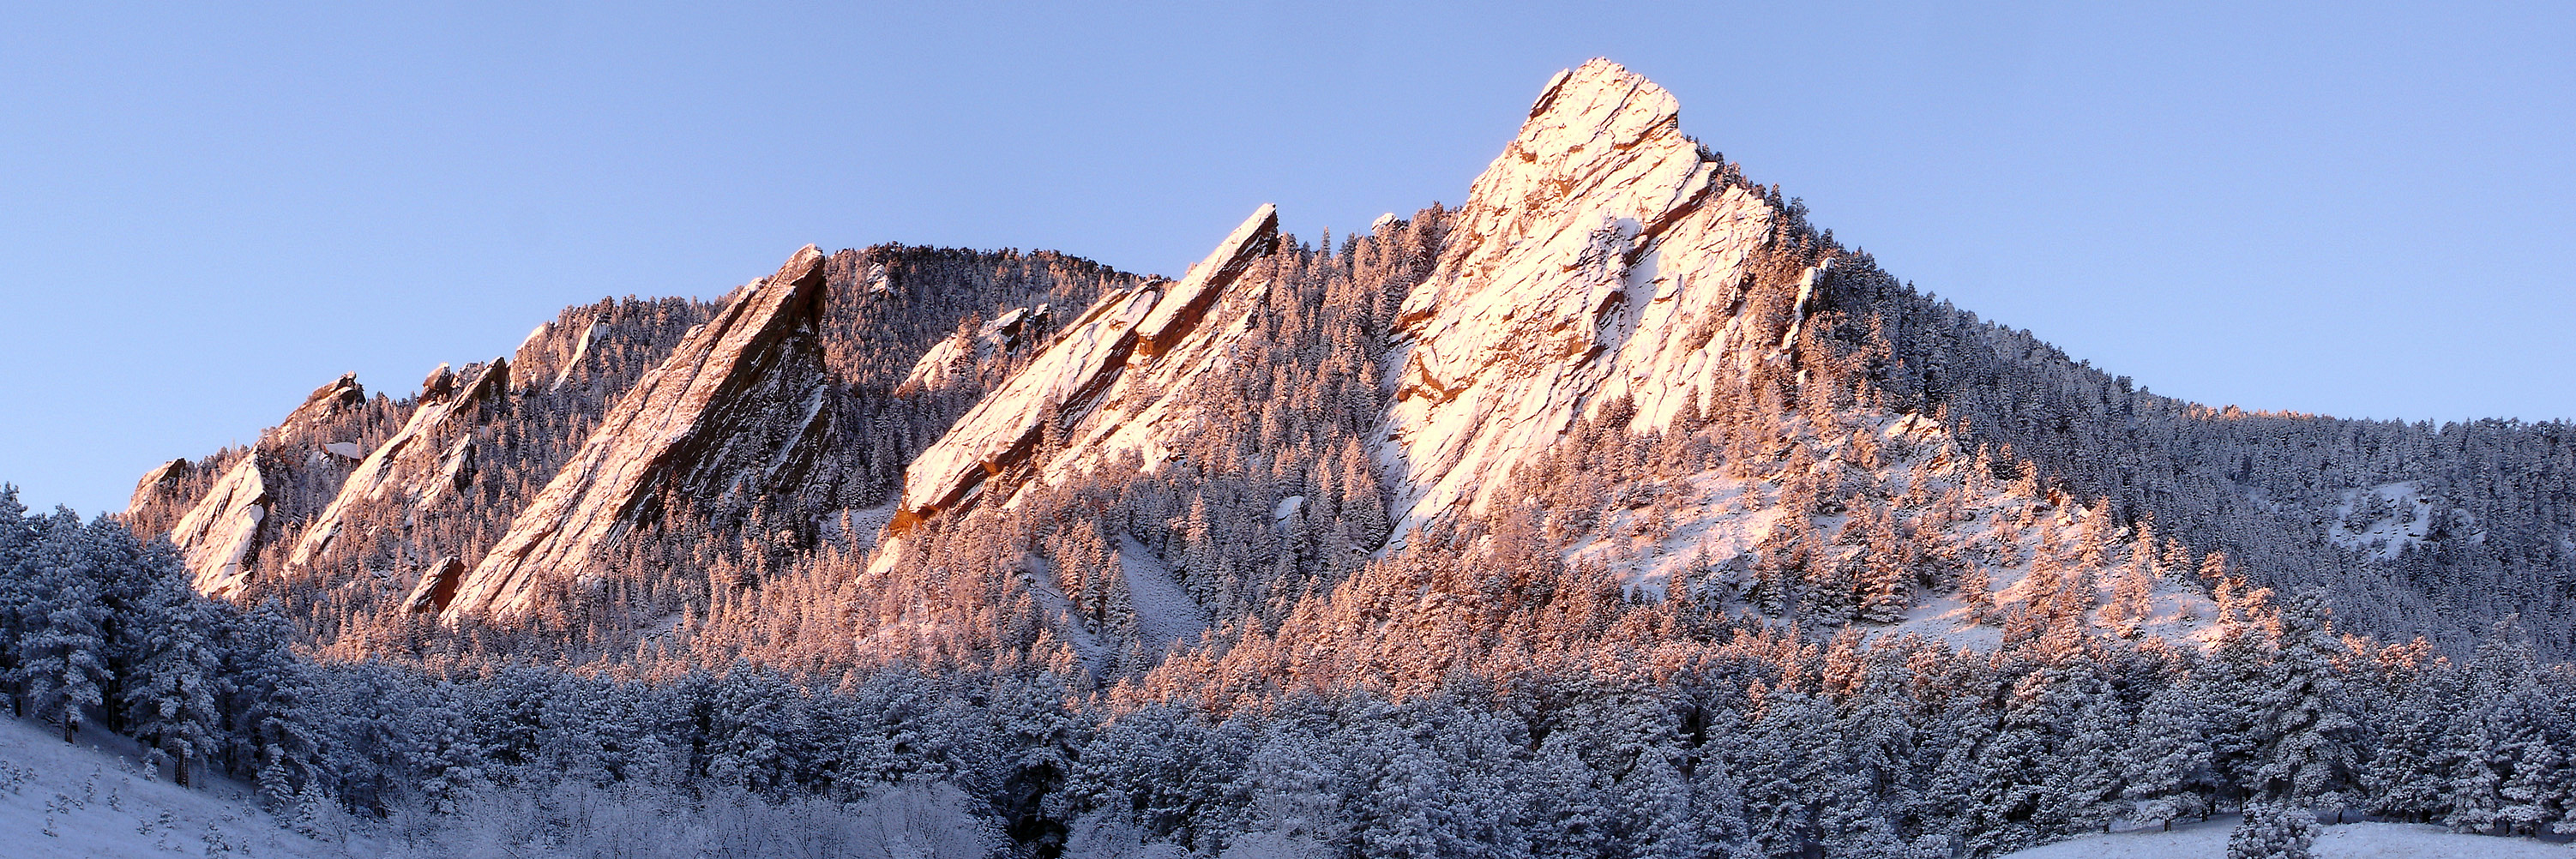 Flatirons Winter Sunrise edit 2.jpg